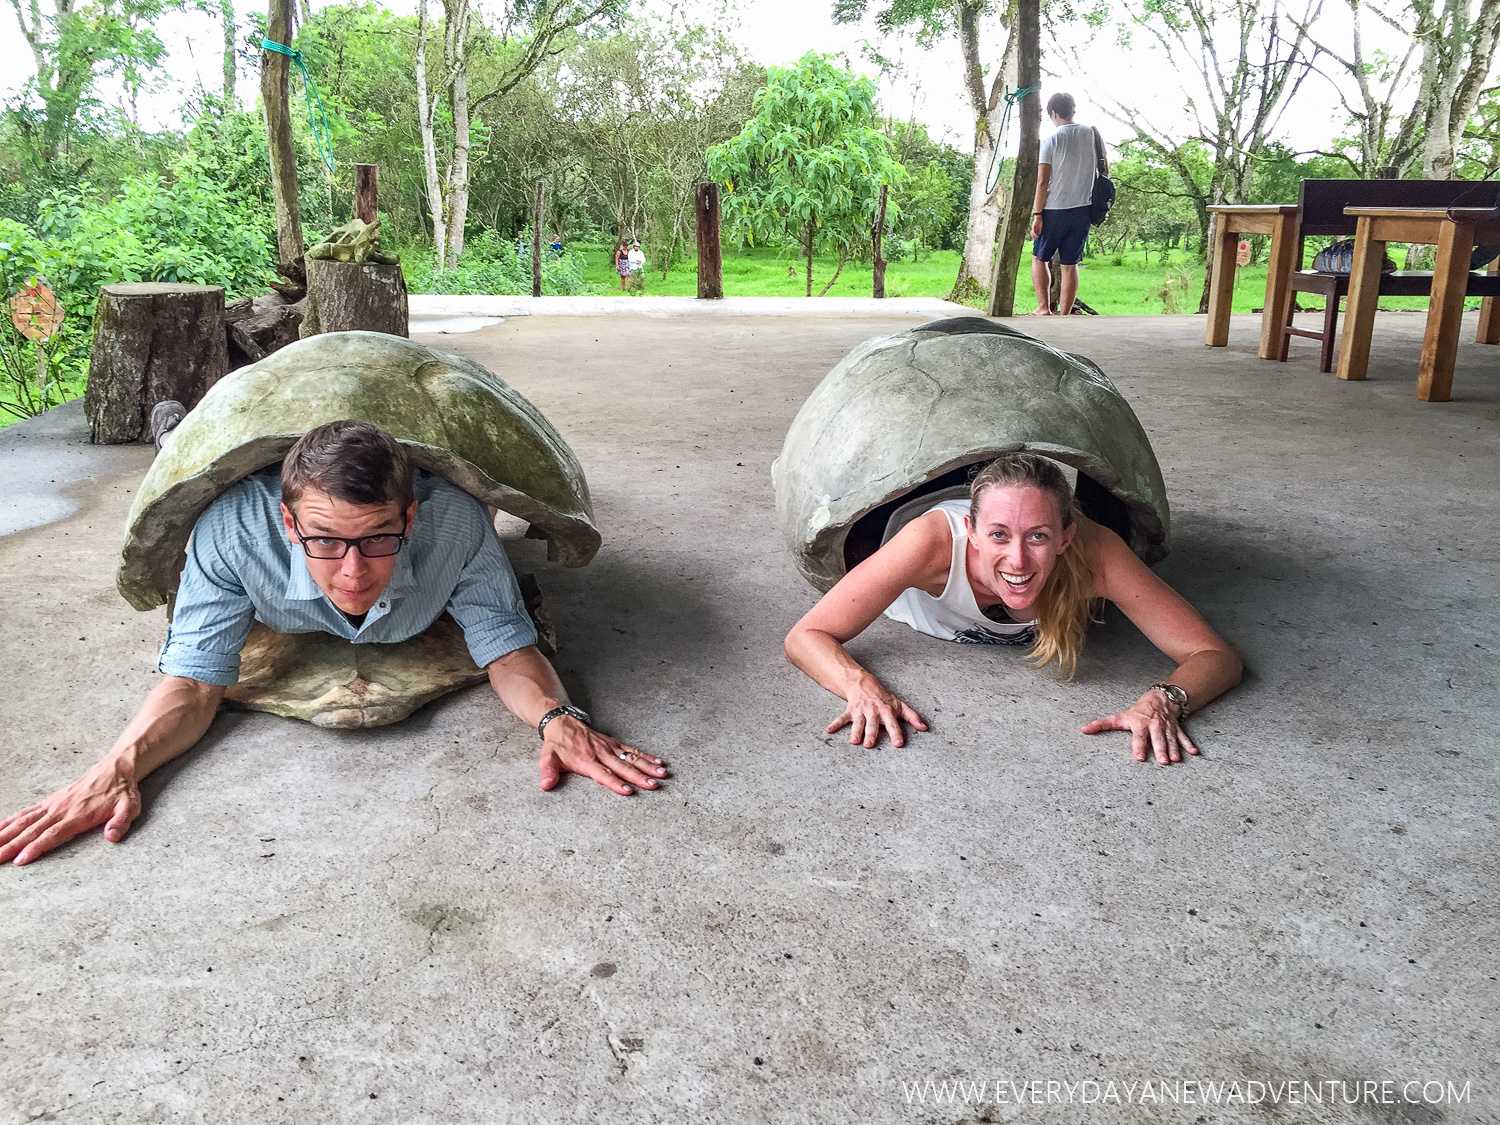 Seeing what it's like to carry around a turtle shell.